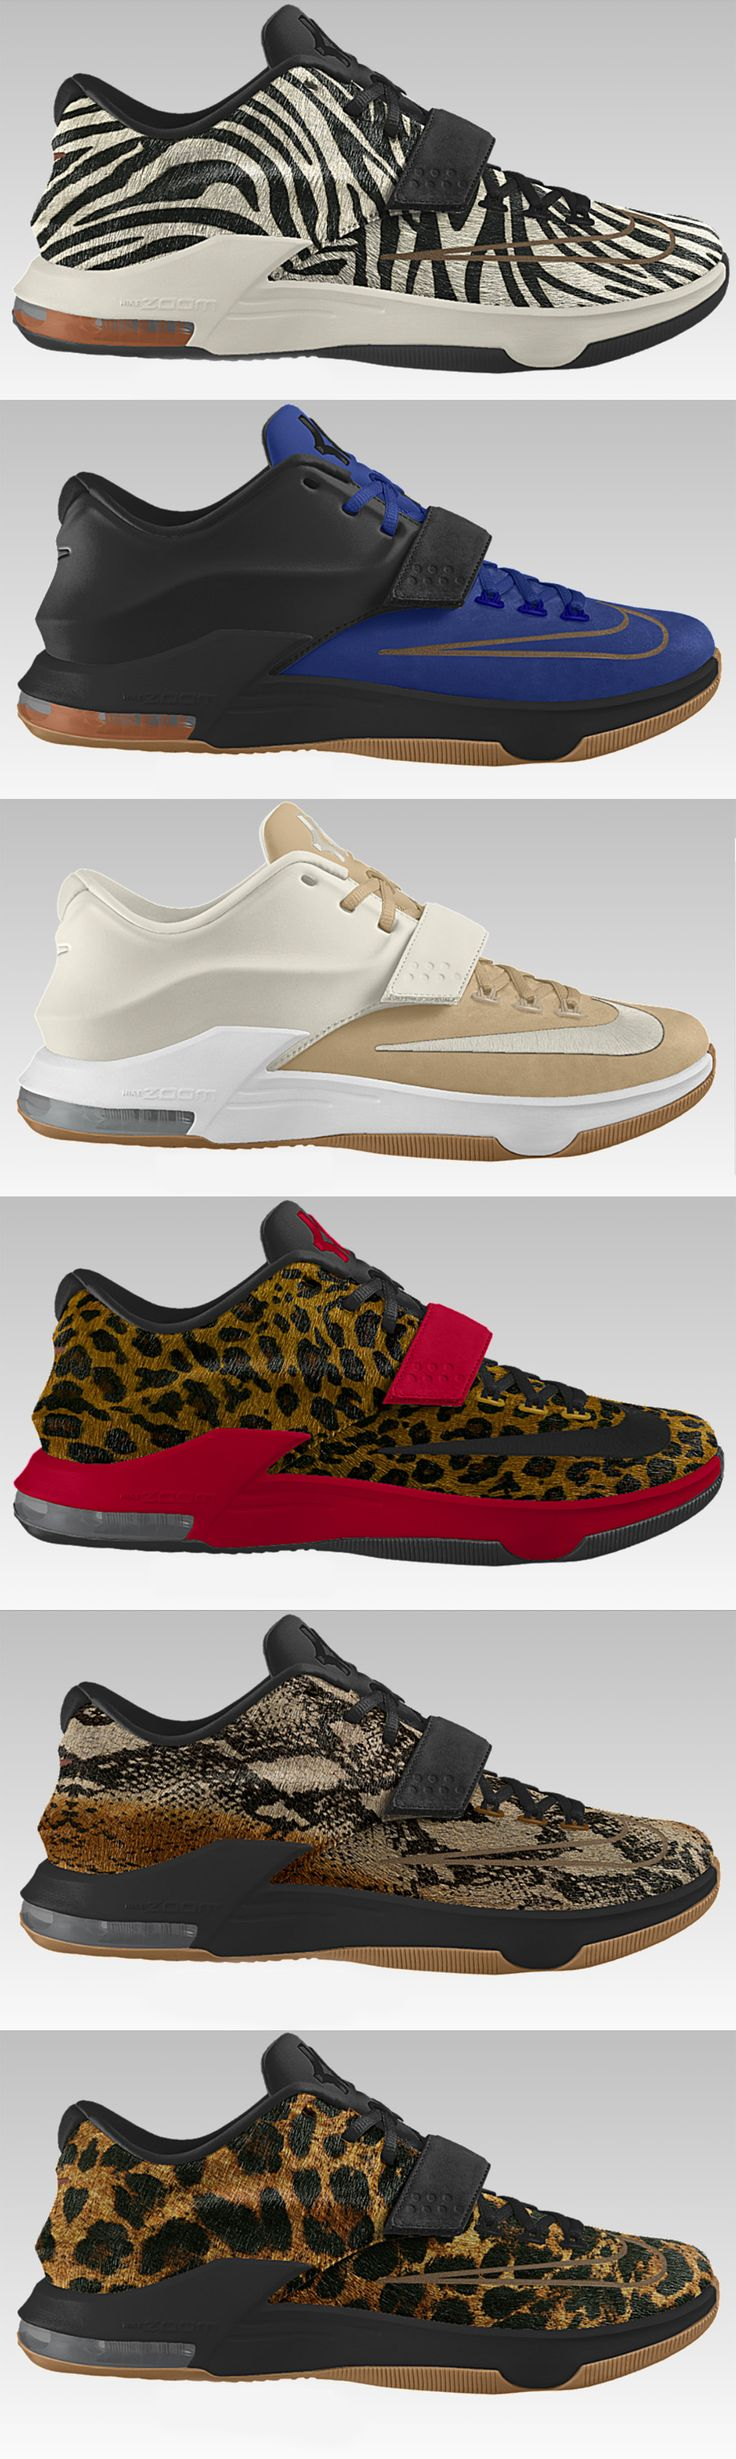 Nike iD adds KD 7 EXT (Examples)